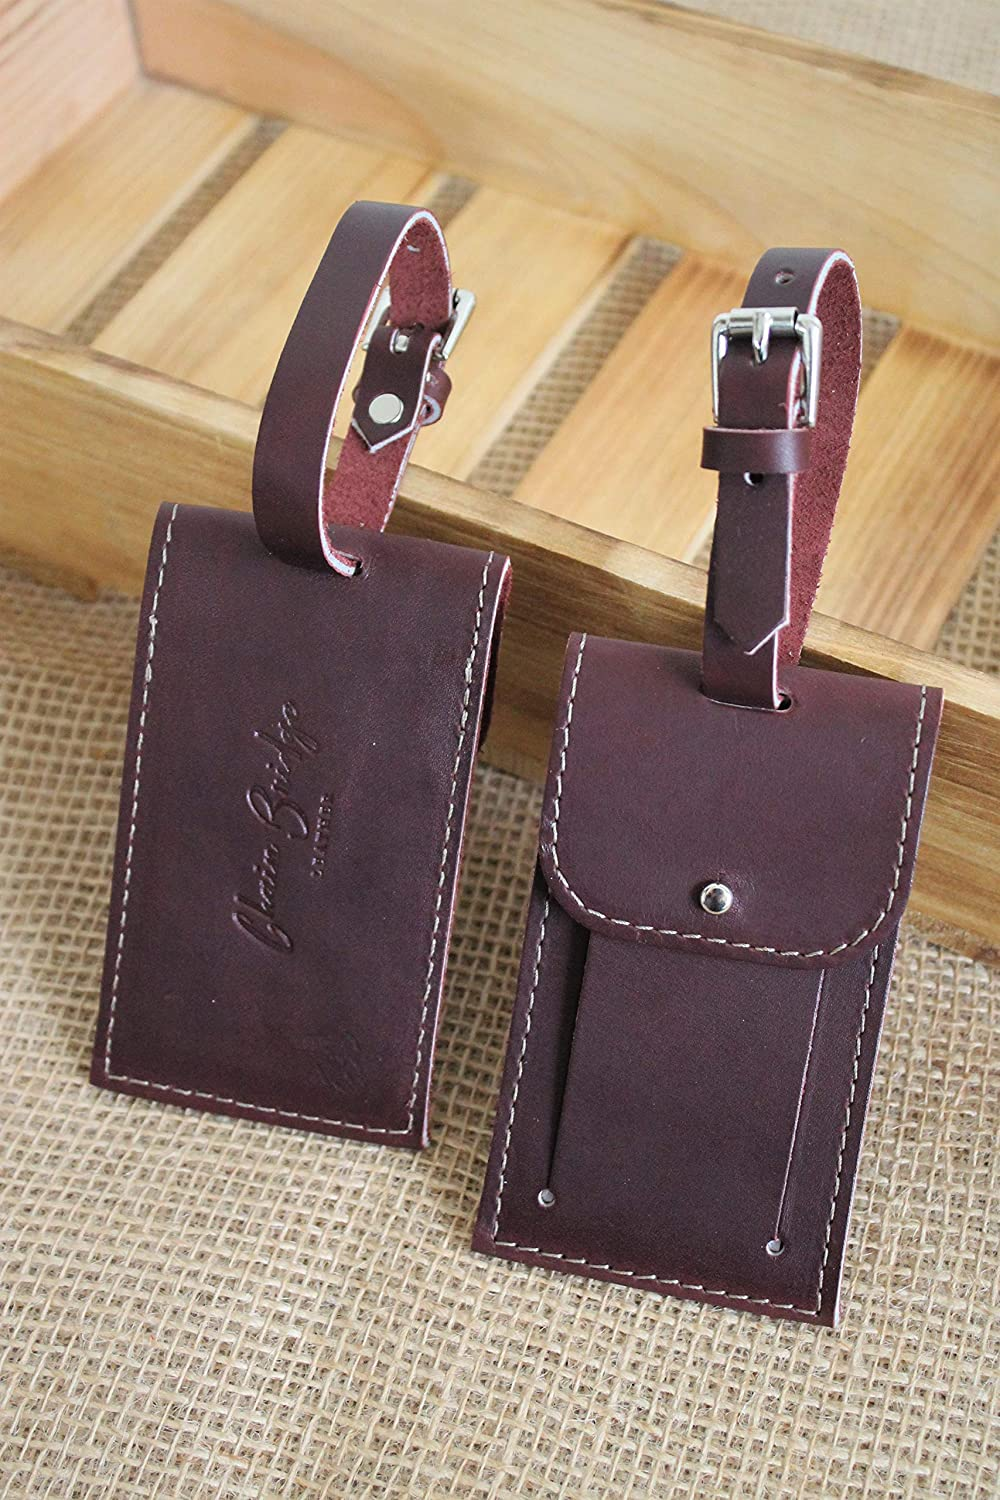 Burgundy Leather Luggage Tag Popular products Baggage Set Handmade of in 2 Miami Mall O